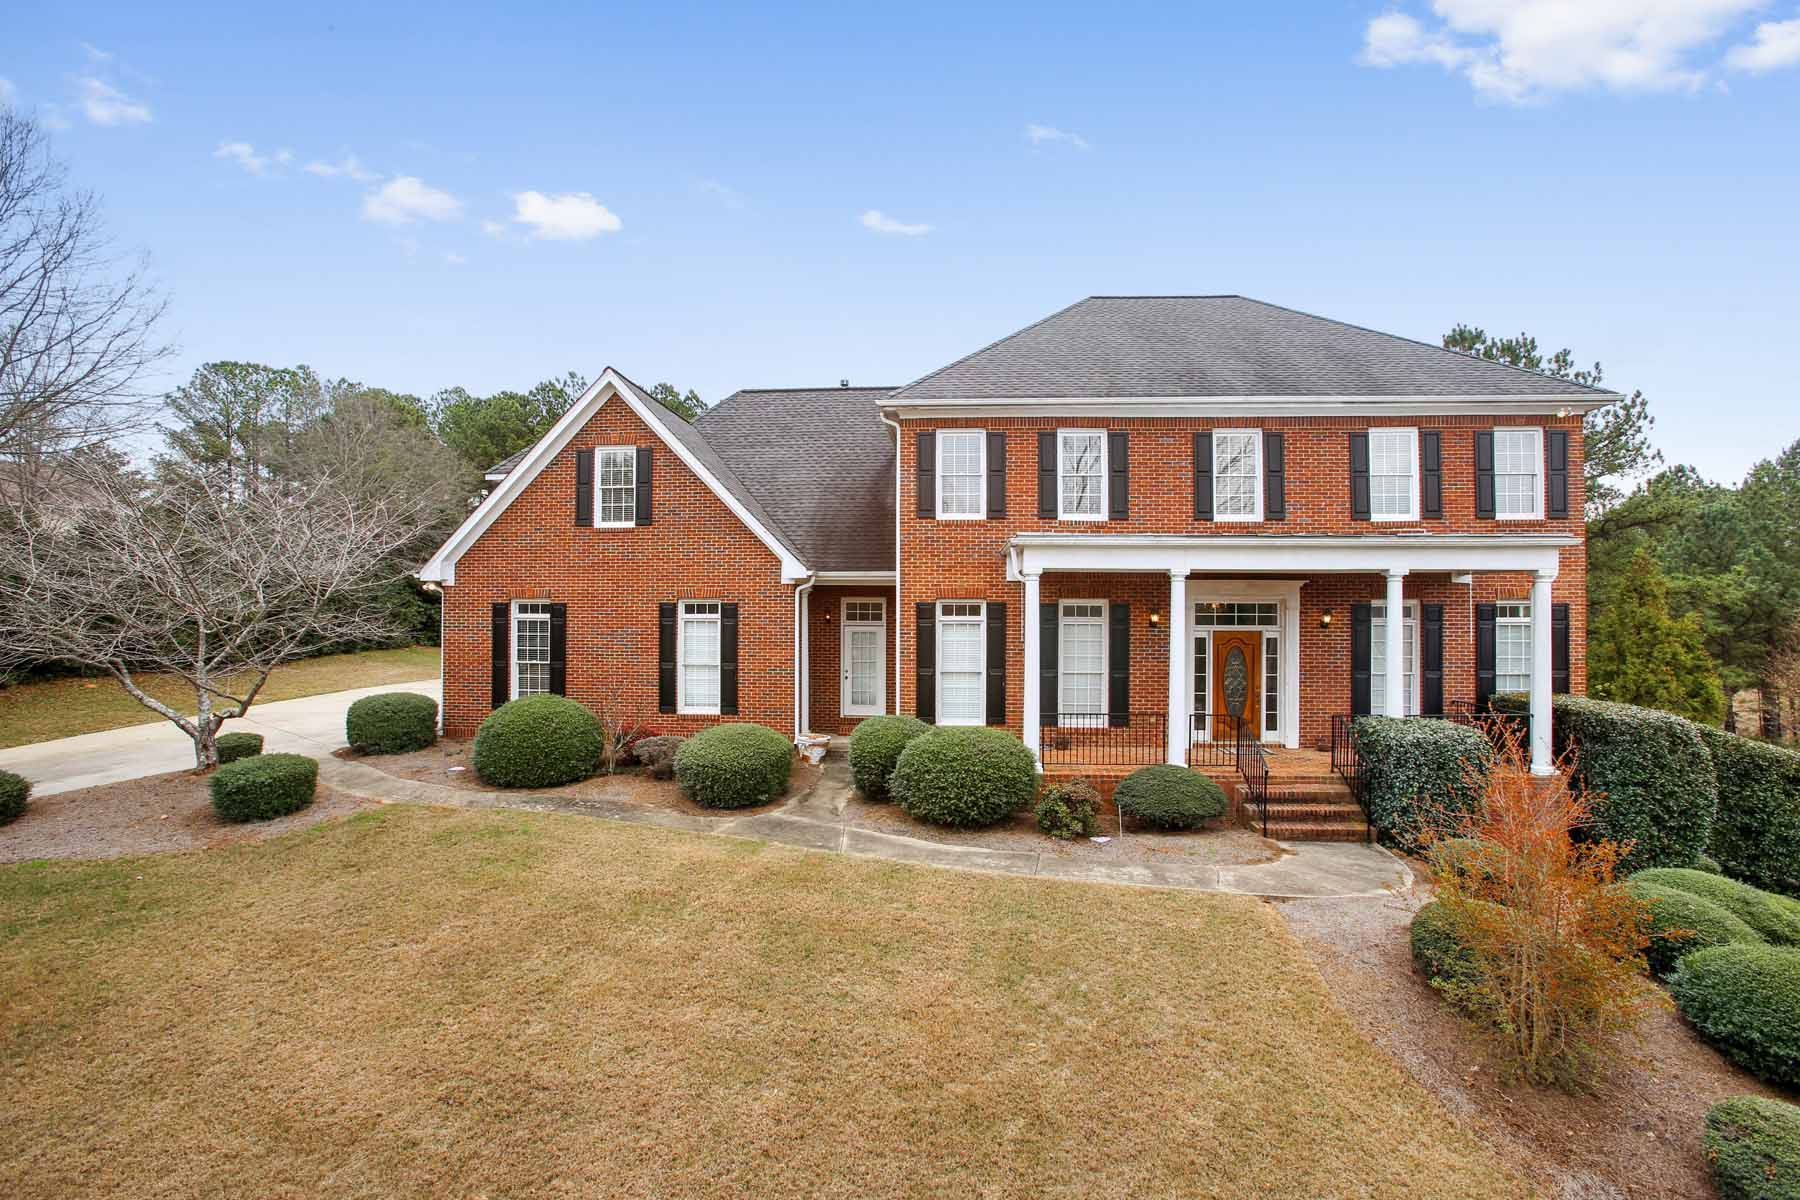 Vivienda unifamiliar por un Venta en Traditional Brick Home in Country Club 626 Champions Drive McDonough, Georgia, 30253 Estados Unidos